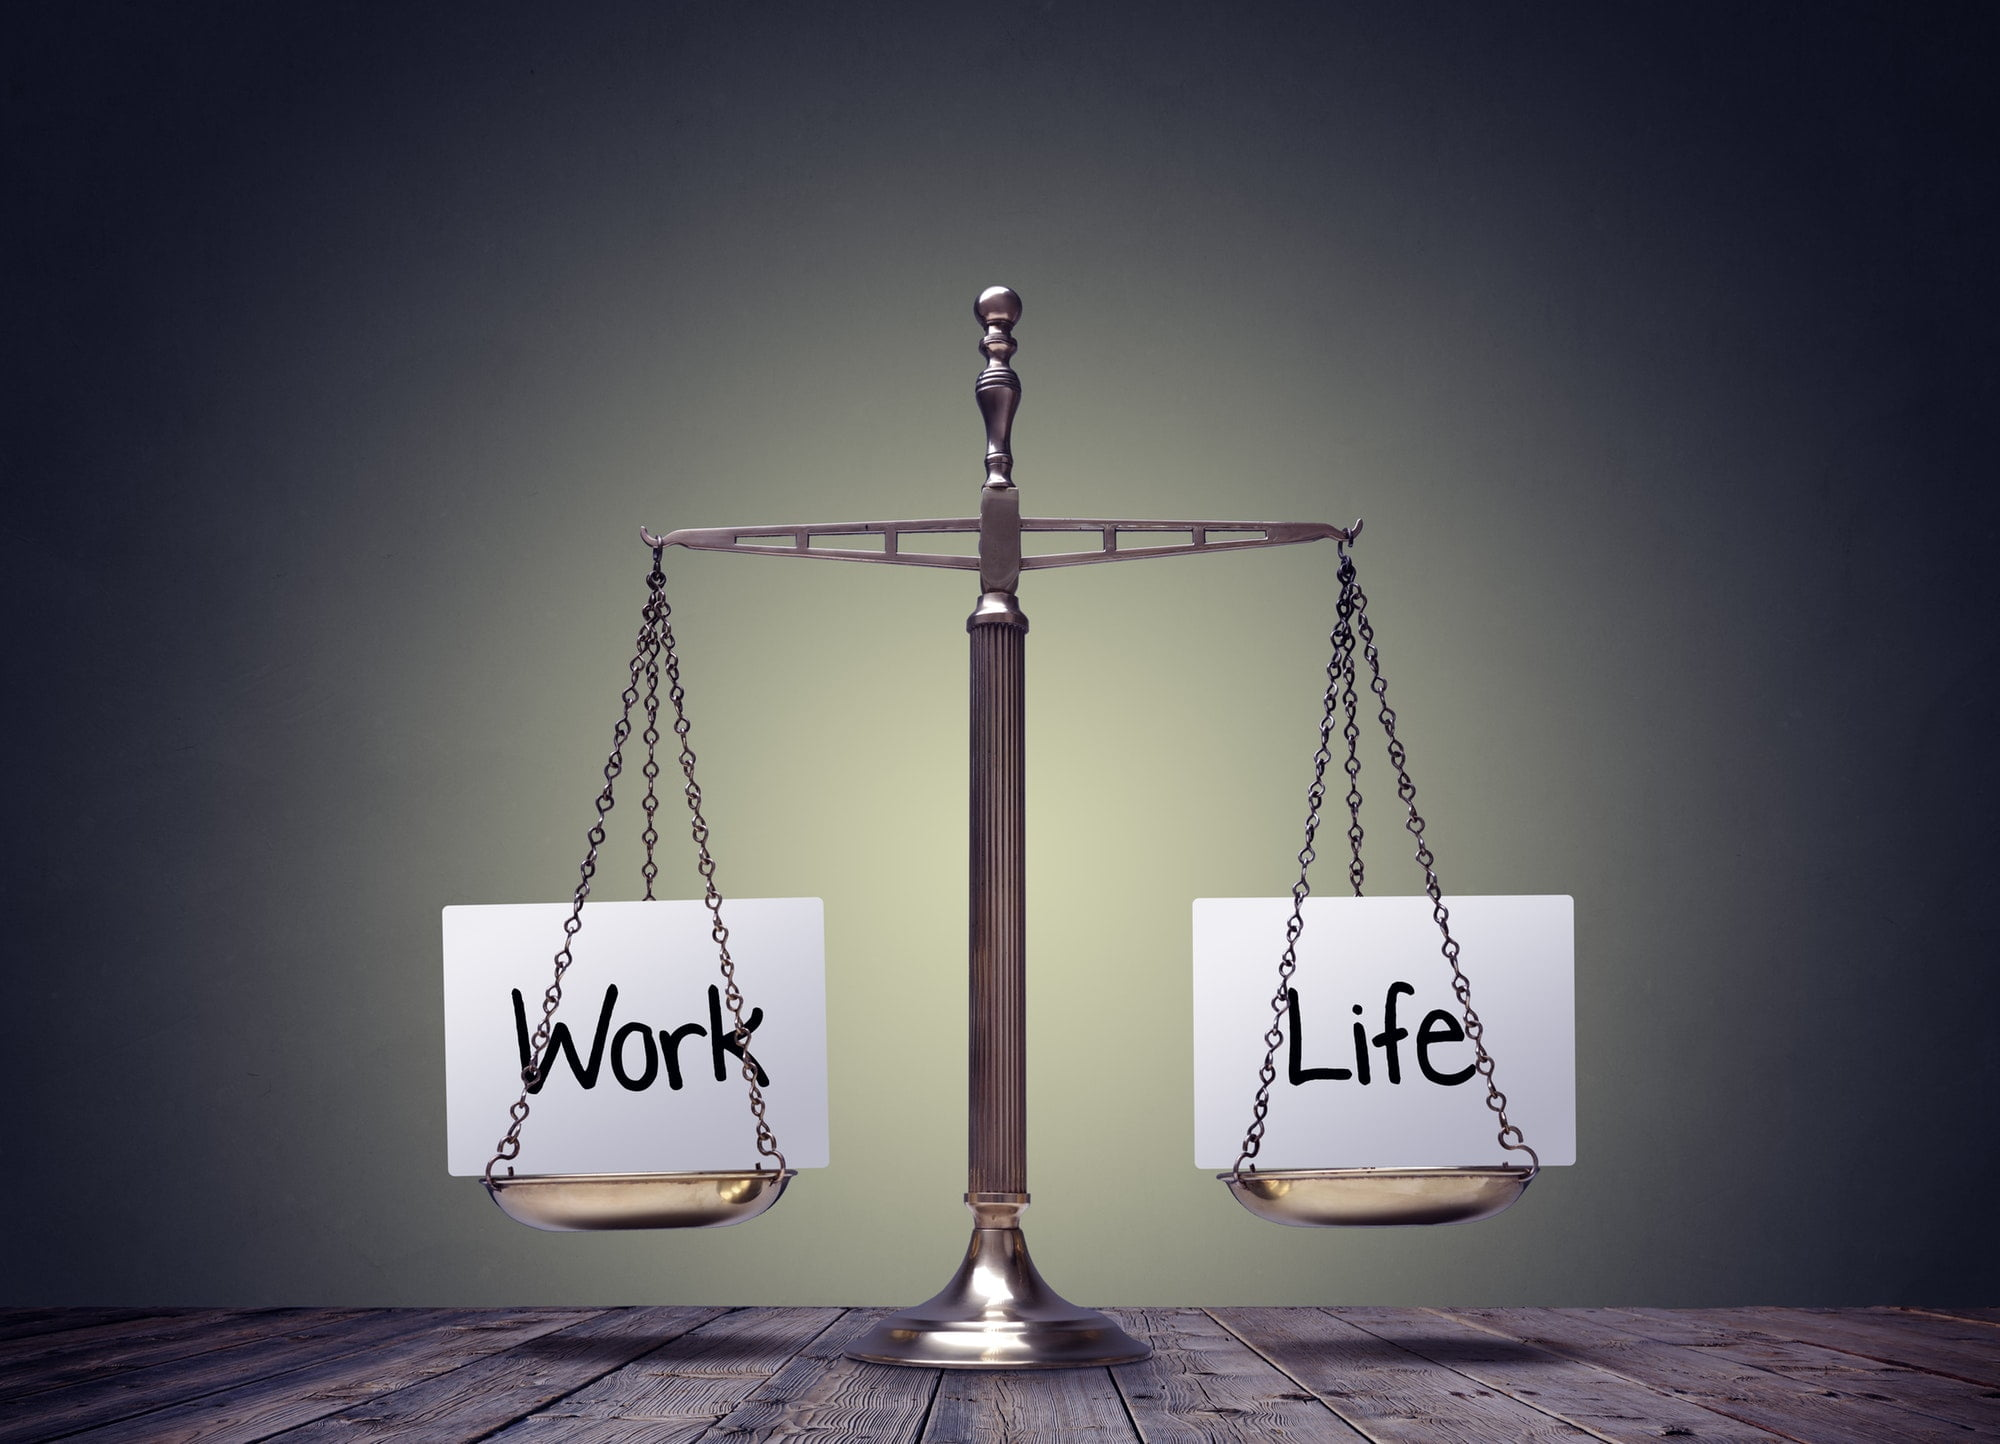 Work life balance scales